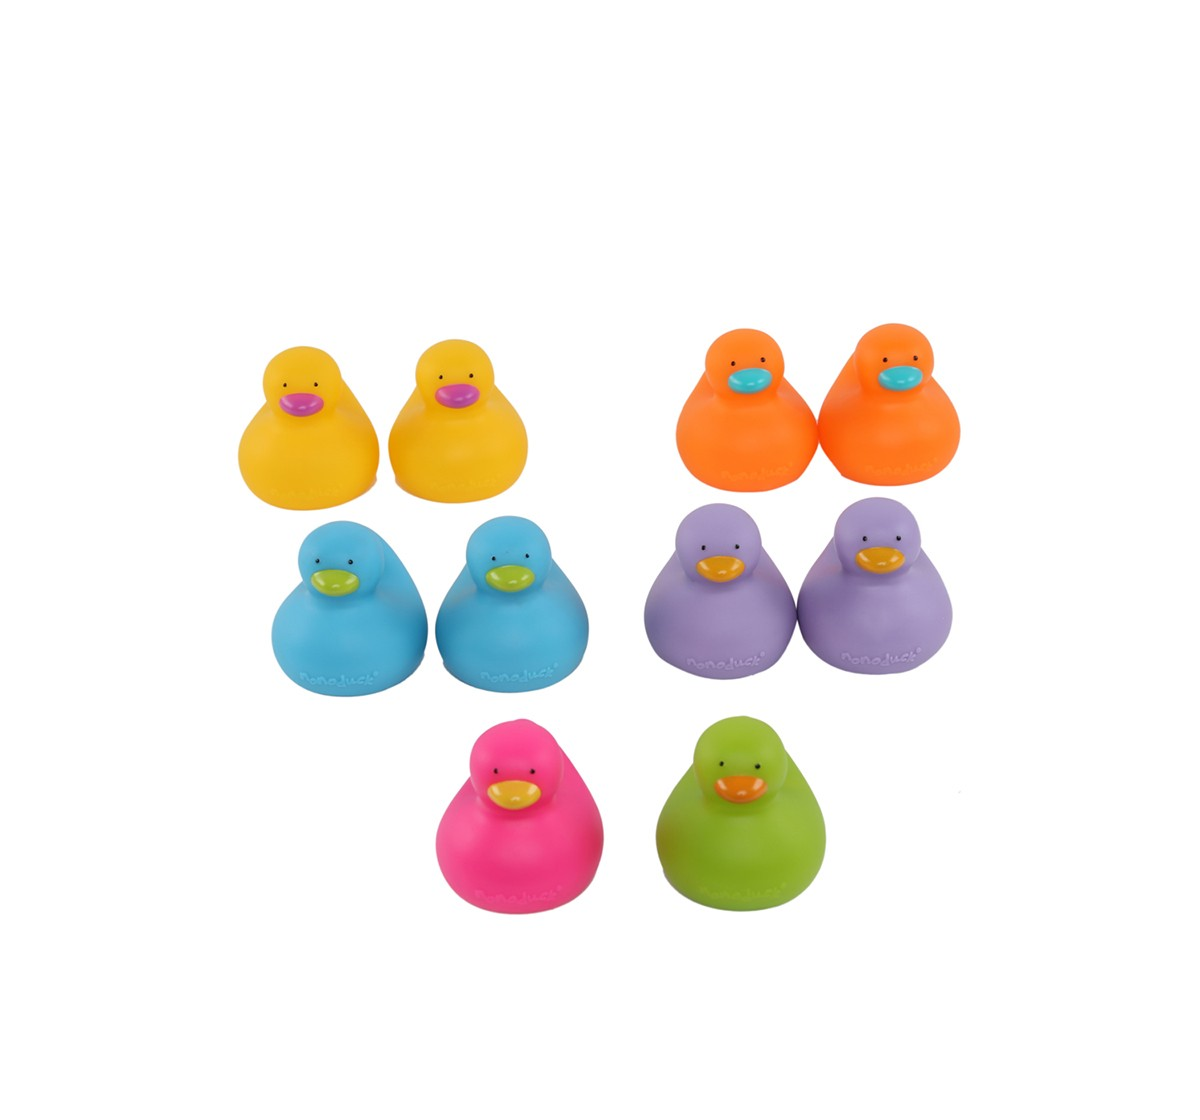 K'S Kids Colorful Bathing Duck Bath Toys & Accessories for Kids age 12M+